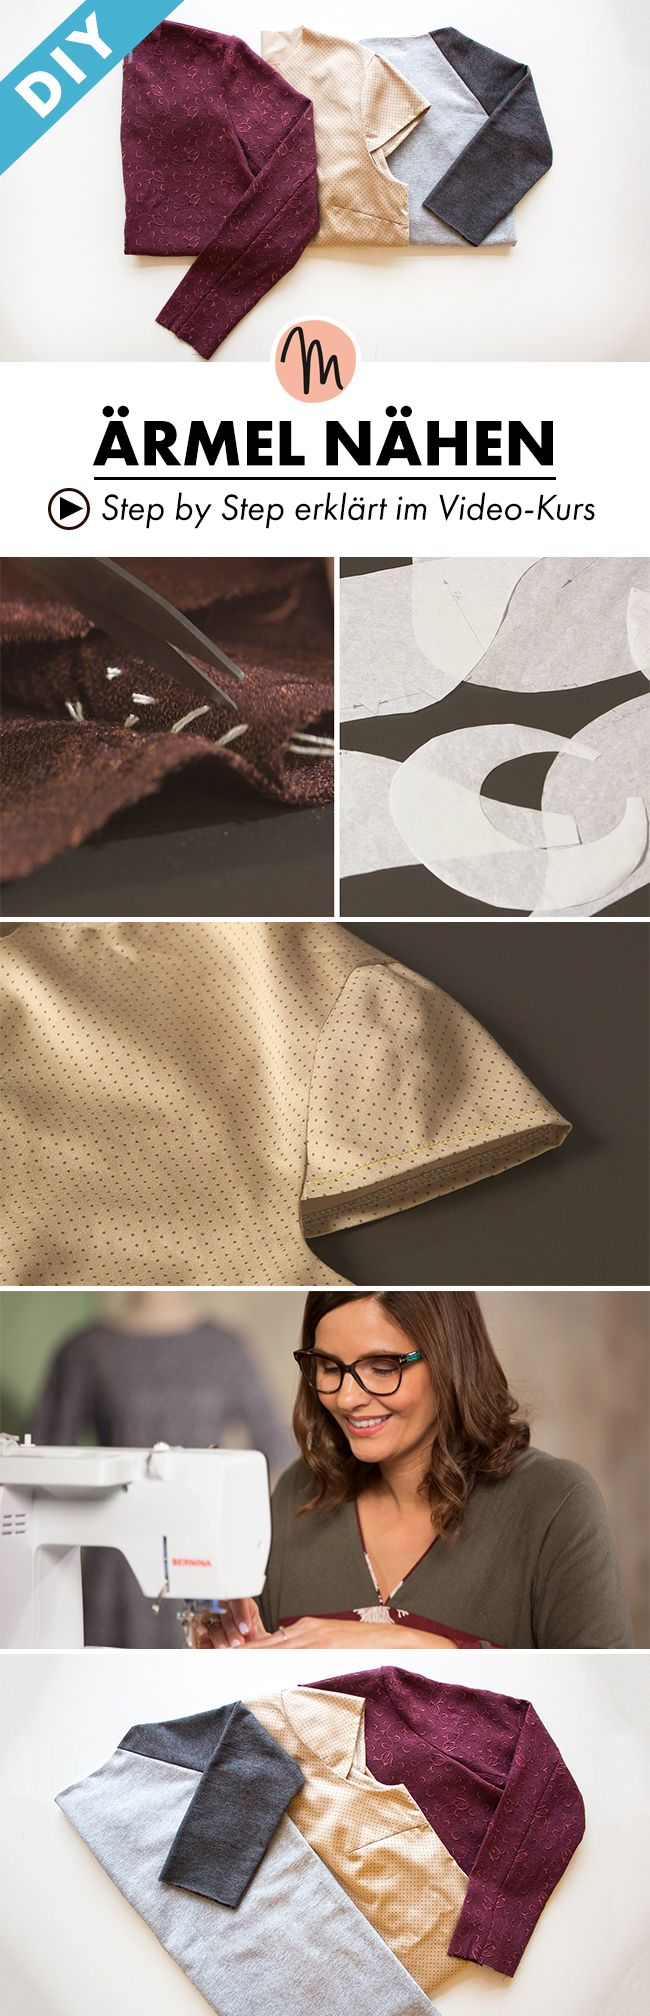 488 best Nähen images on Pinterest | Sewing ideas, Sewing and Upcycling